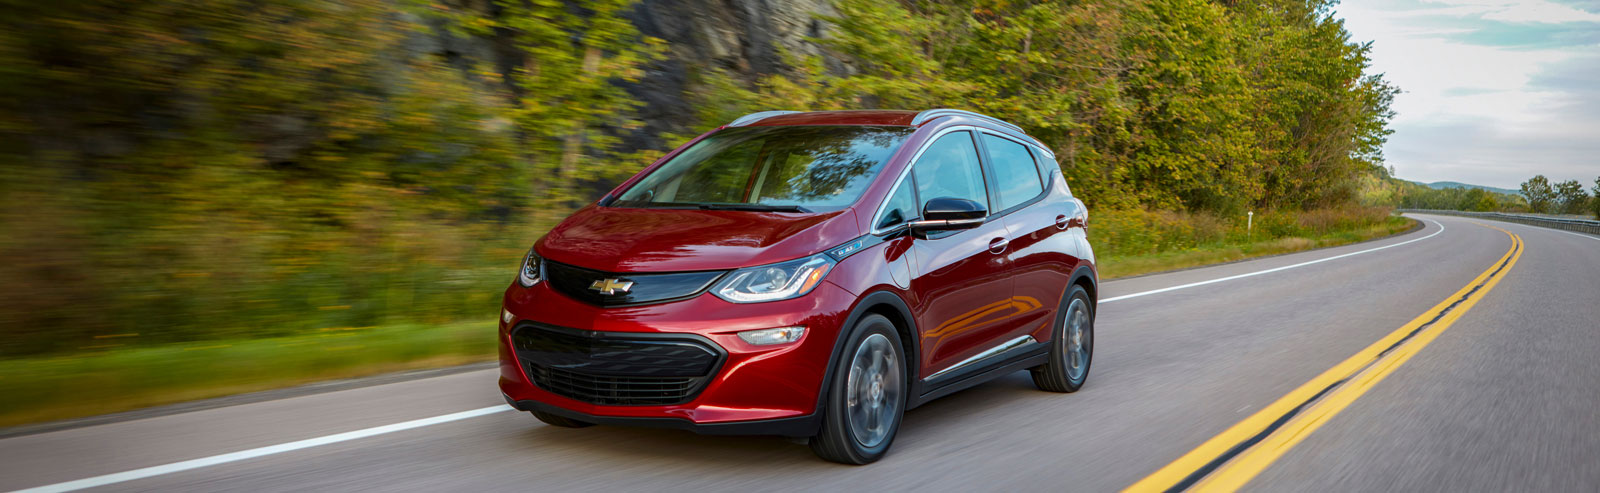 Chevrolet Bolt EV sales in Q2 of 2019 increase by 14%